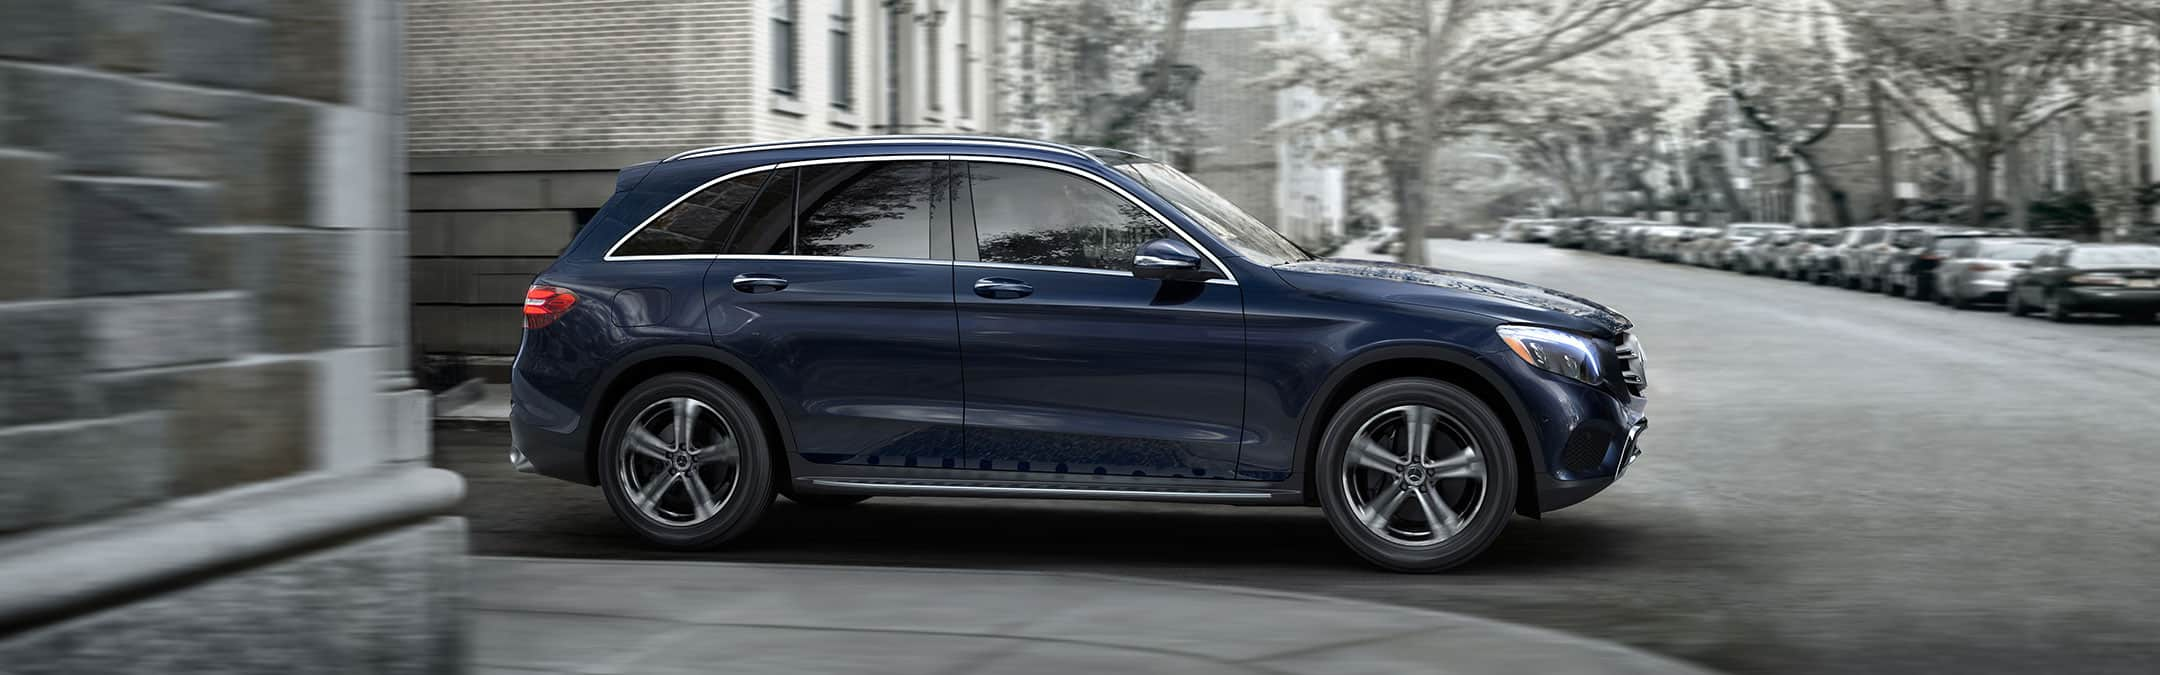 The 2019 GLC SUV